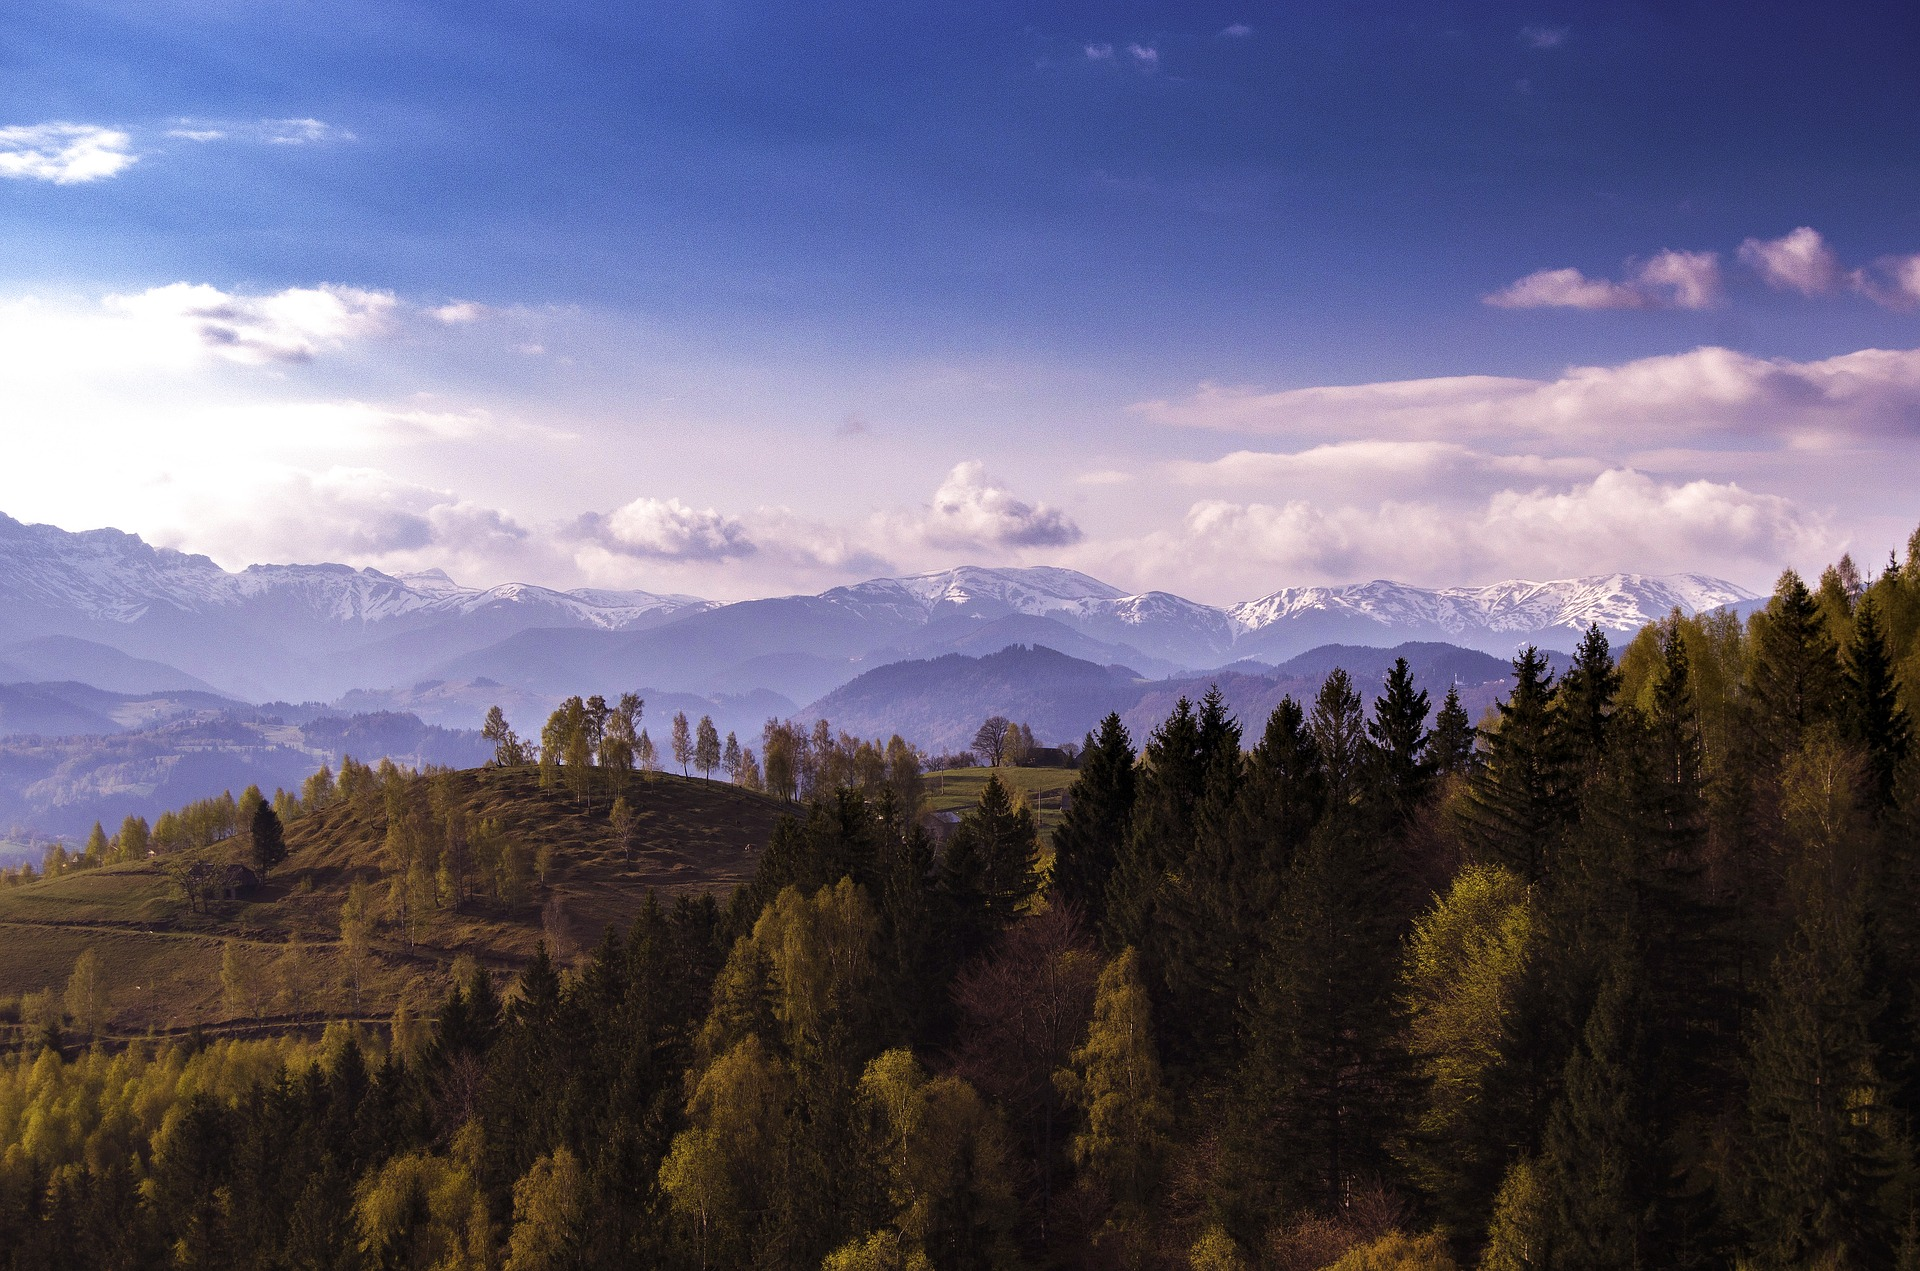 You can enjoy views like this on the trails of the Bucegi Mountains.